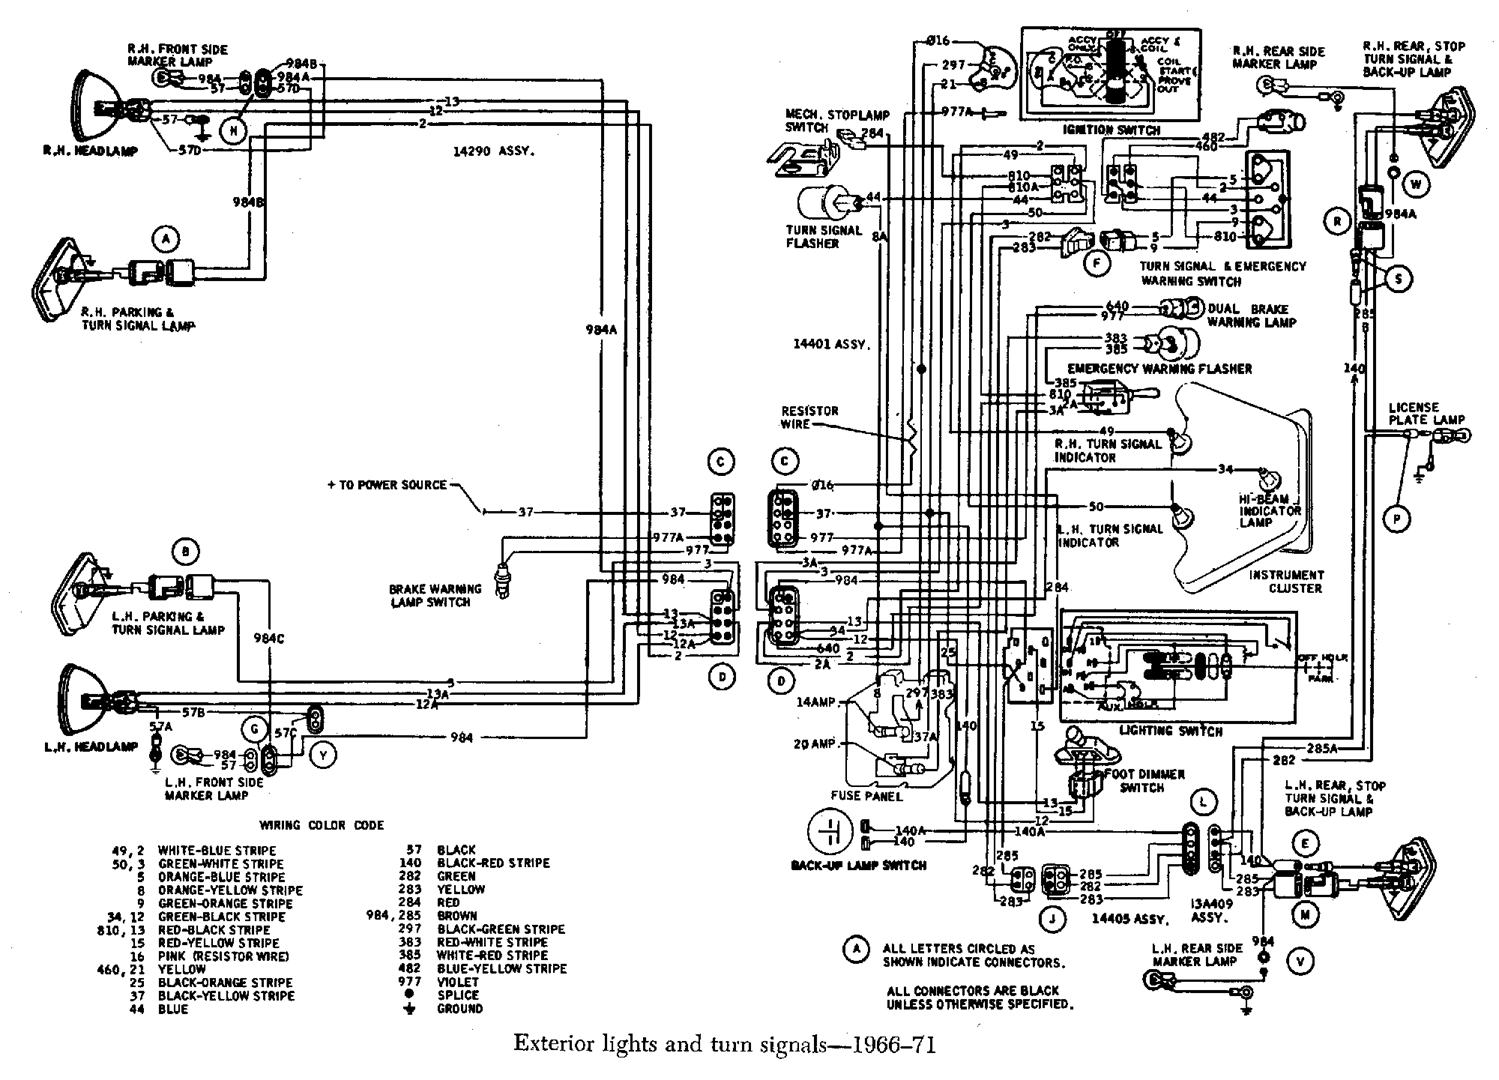 Tech Corner 1970 Chevy Truck Vin Location Get Free Image About Wiring Diagram I Found A Vacuum Chart Specifically For Broncos In California